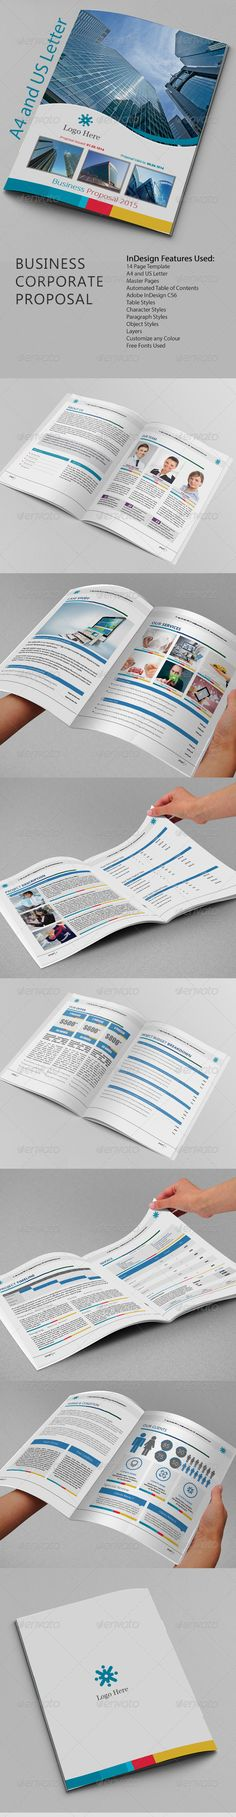 Proposal Template Proposal templates and Invoice layout - business proposal template microsoft word